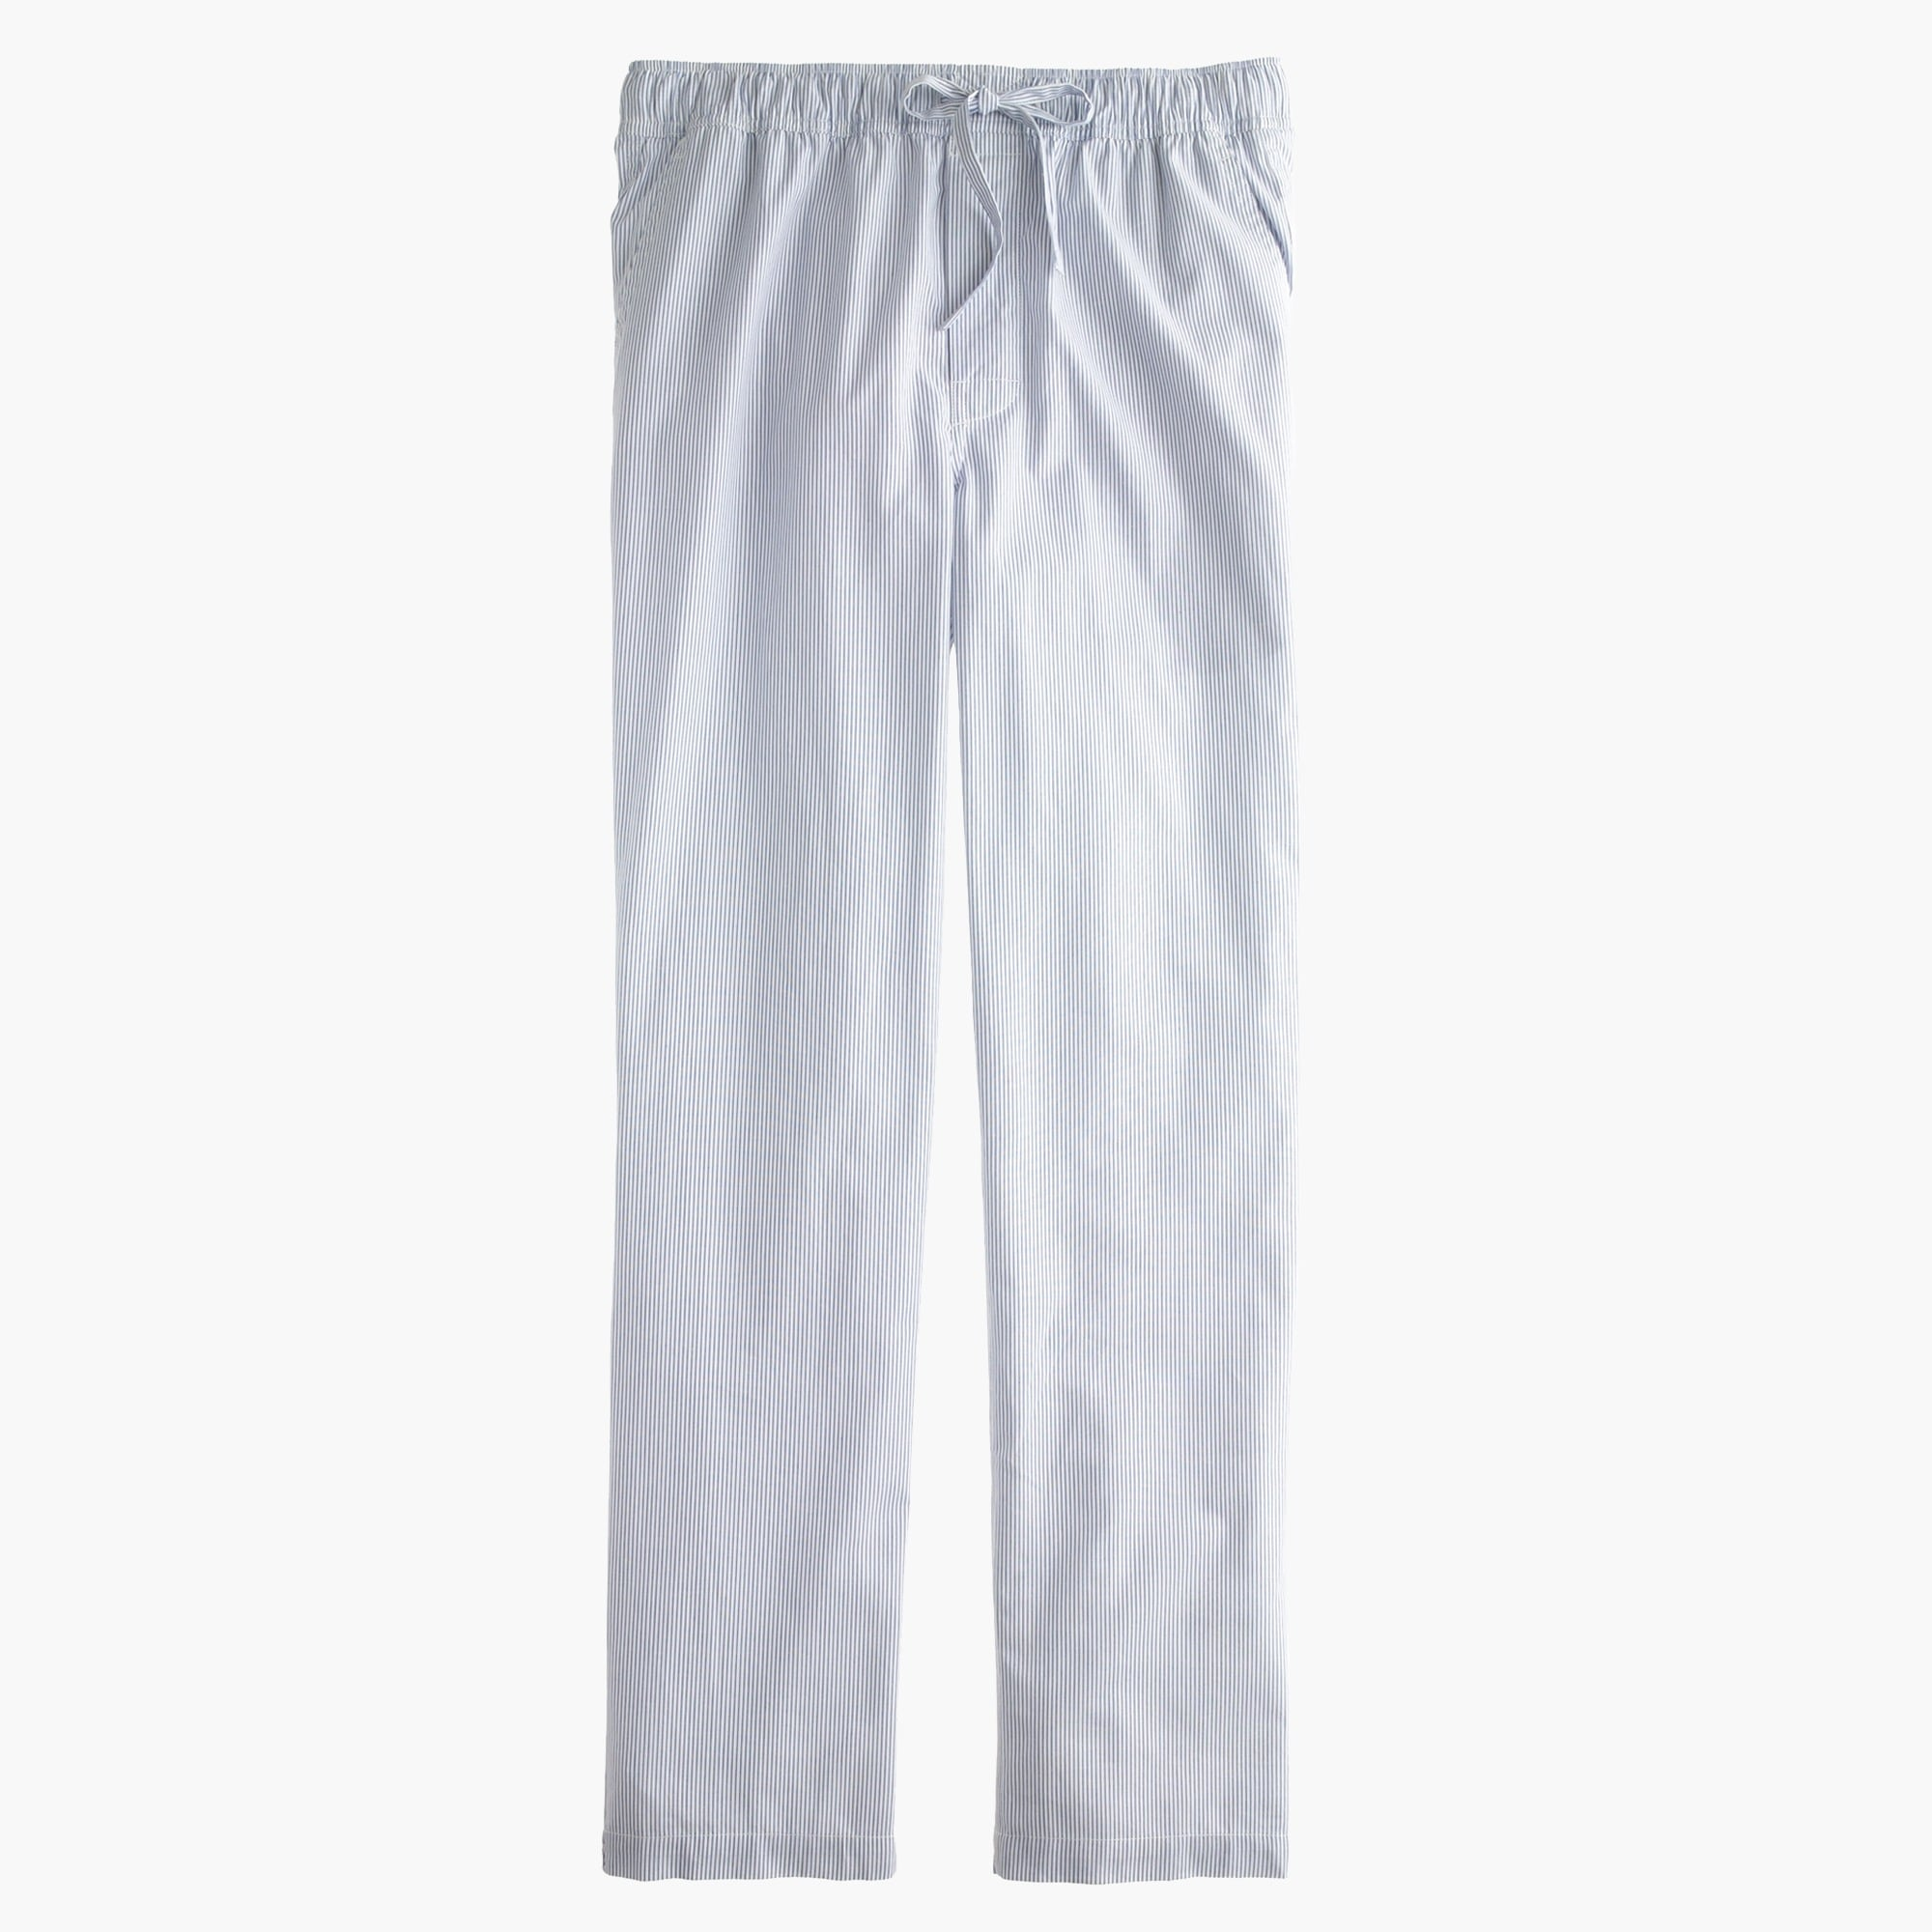 men's cotton pajama pant in stripe - men's lounge